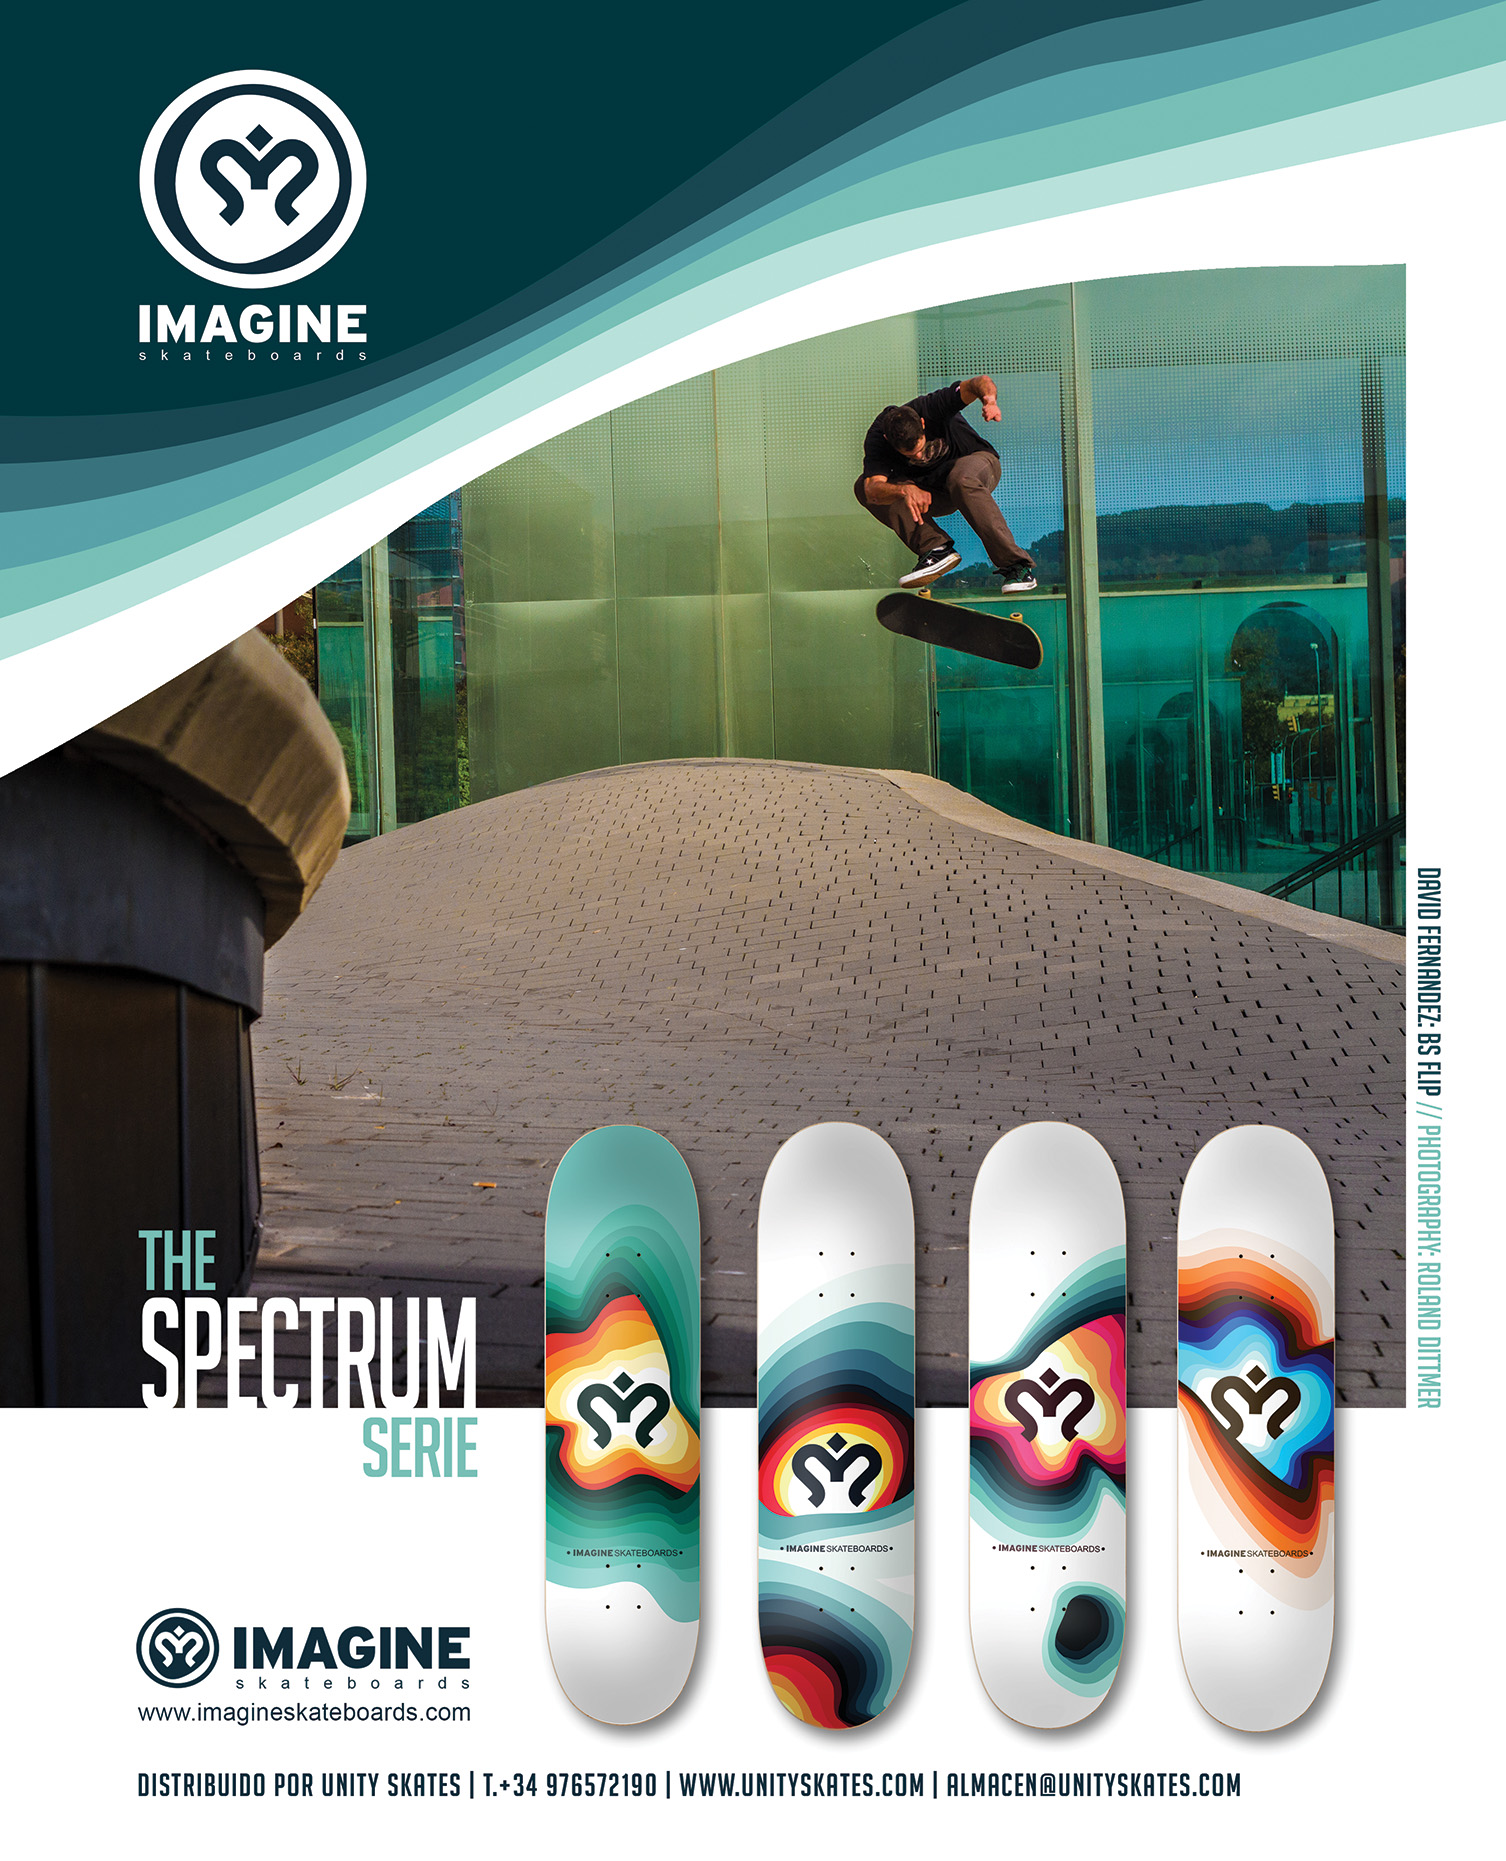 Ads Spectrum Series - Imagine Skateboards